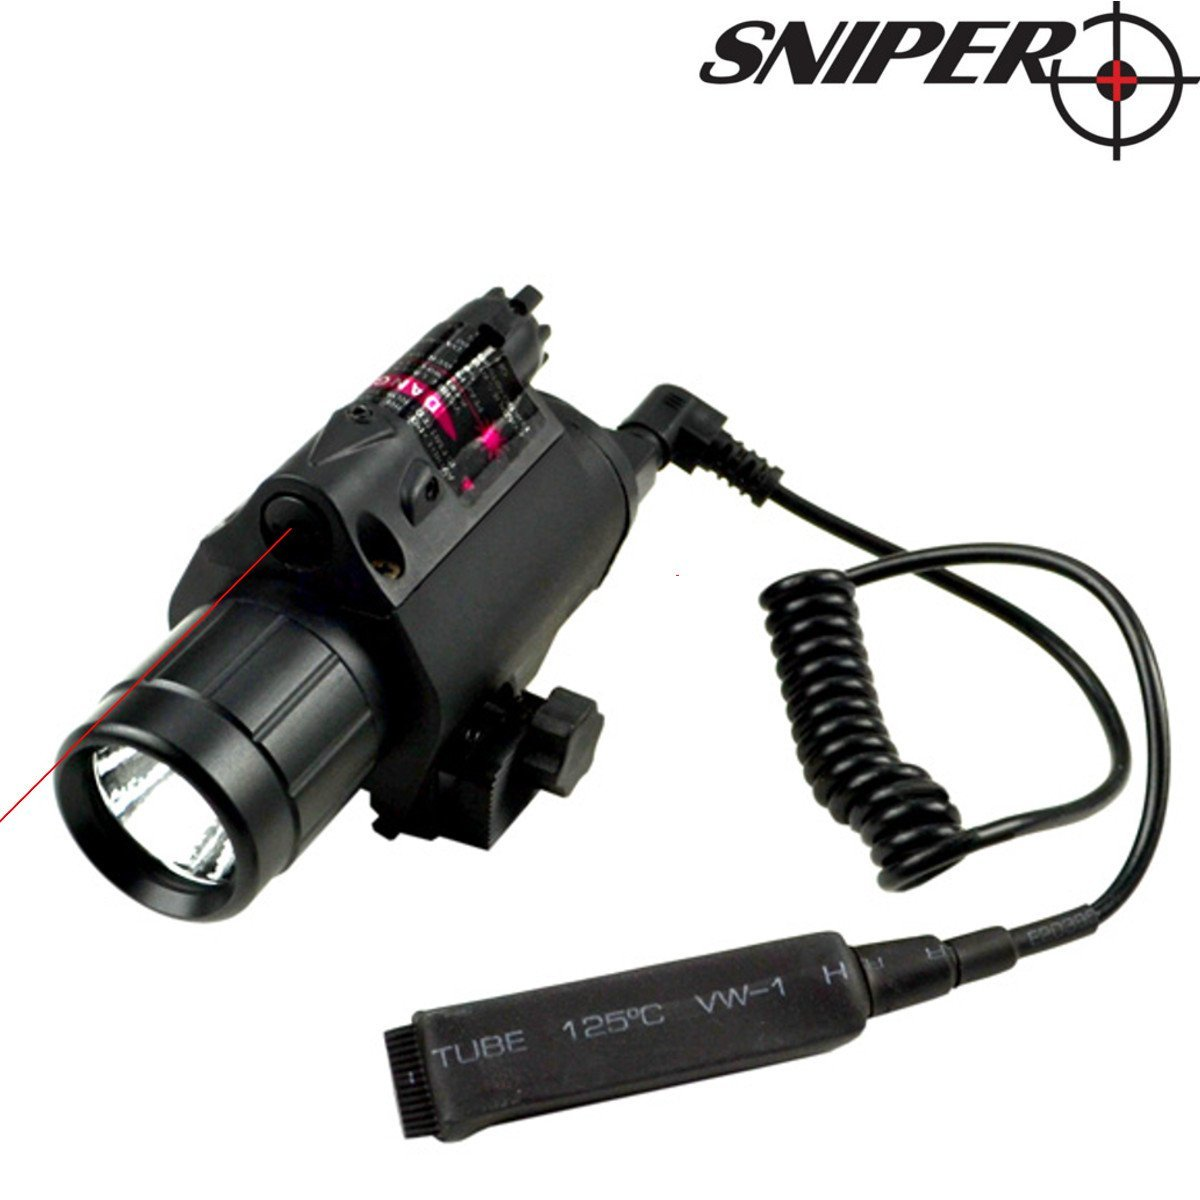 Sniper® FLRL01 Tactical LED Flashlight with Intergrated Red Dot Laser . CREE XR-E Q5 LED, 200 lumen Max. Output, Integrated Mount Deck, 2xCR123A Batteries and Pressure Switch Included.